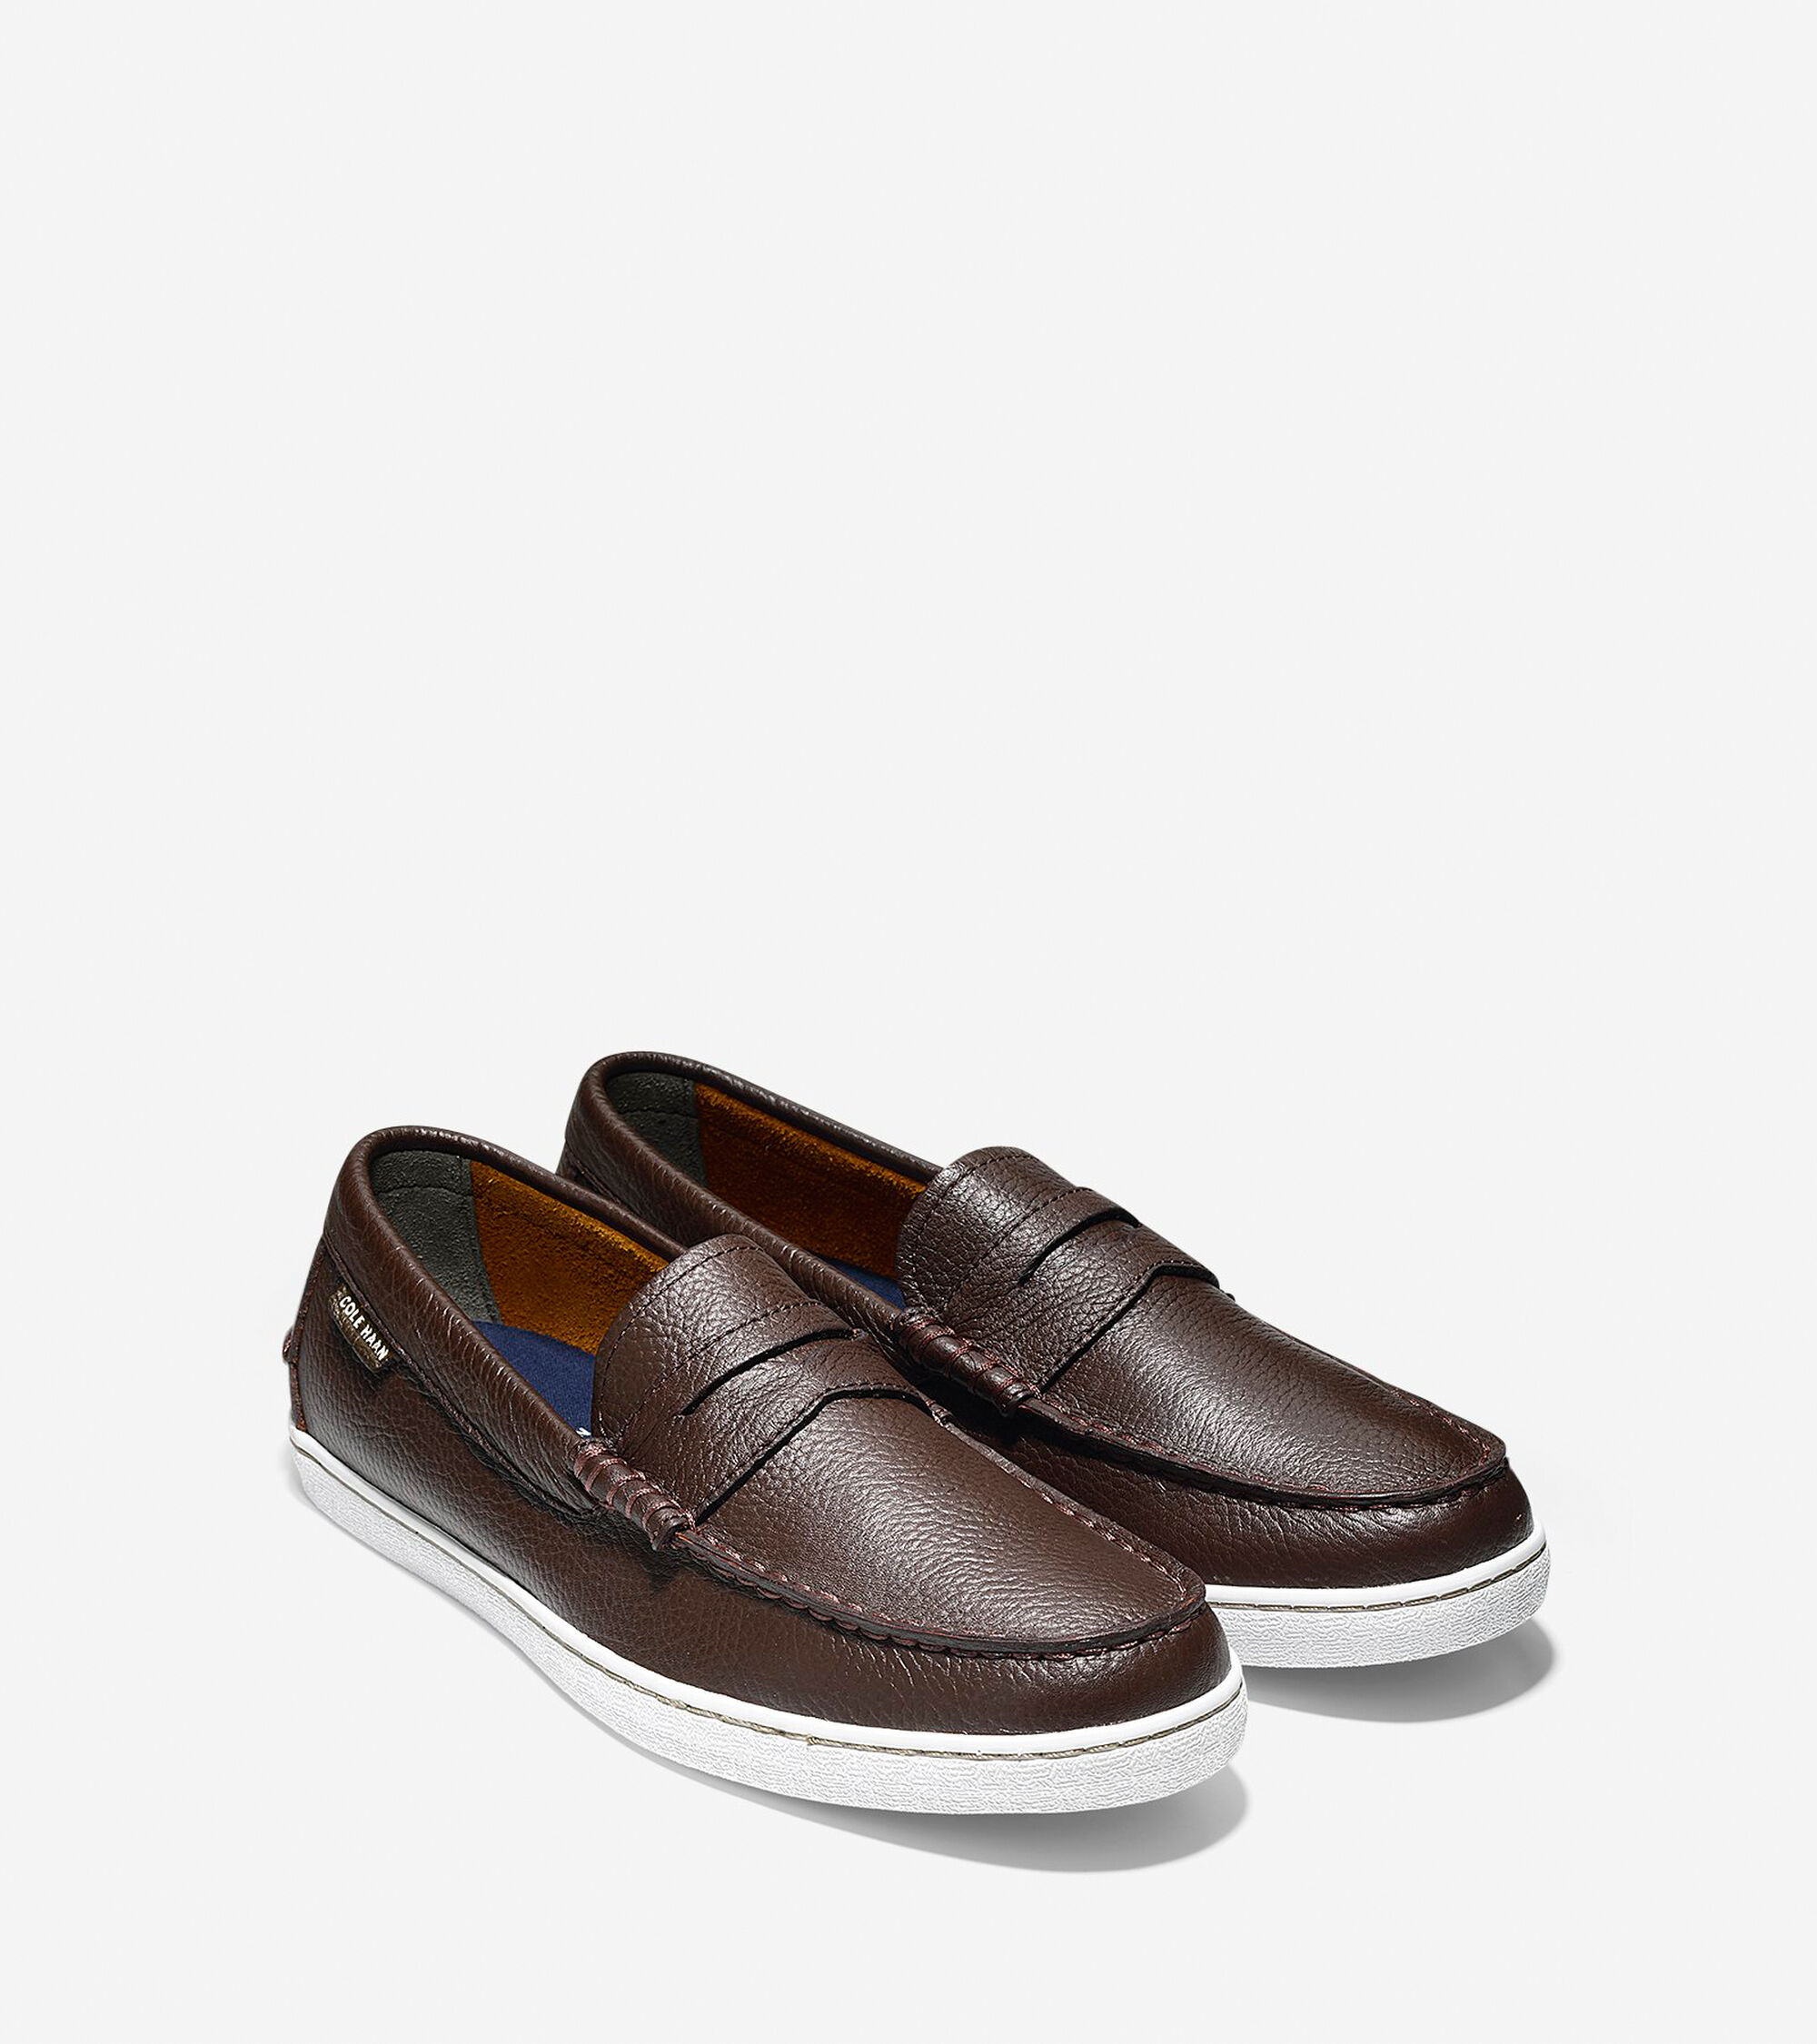 89564b65abd Men s Nantucket Loafers in British Tan Leather   Sale